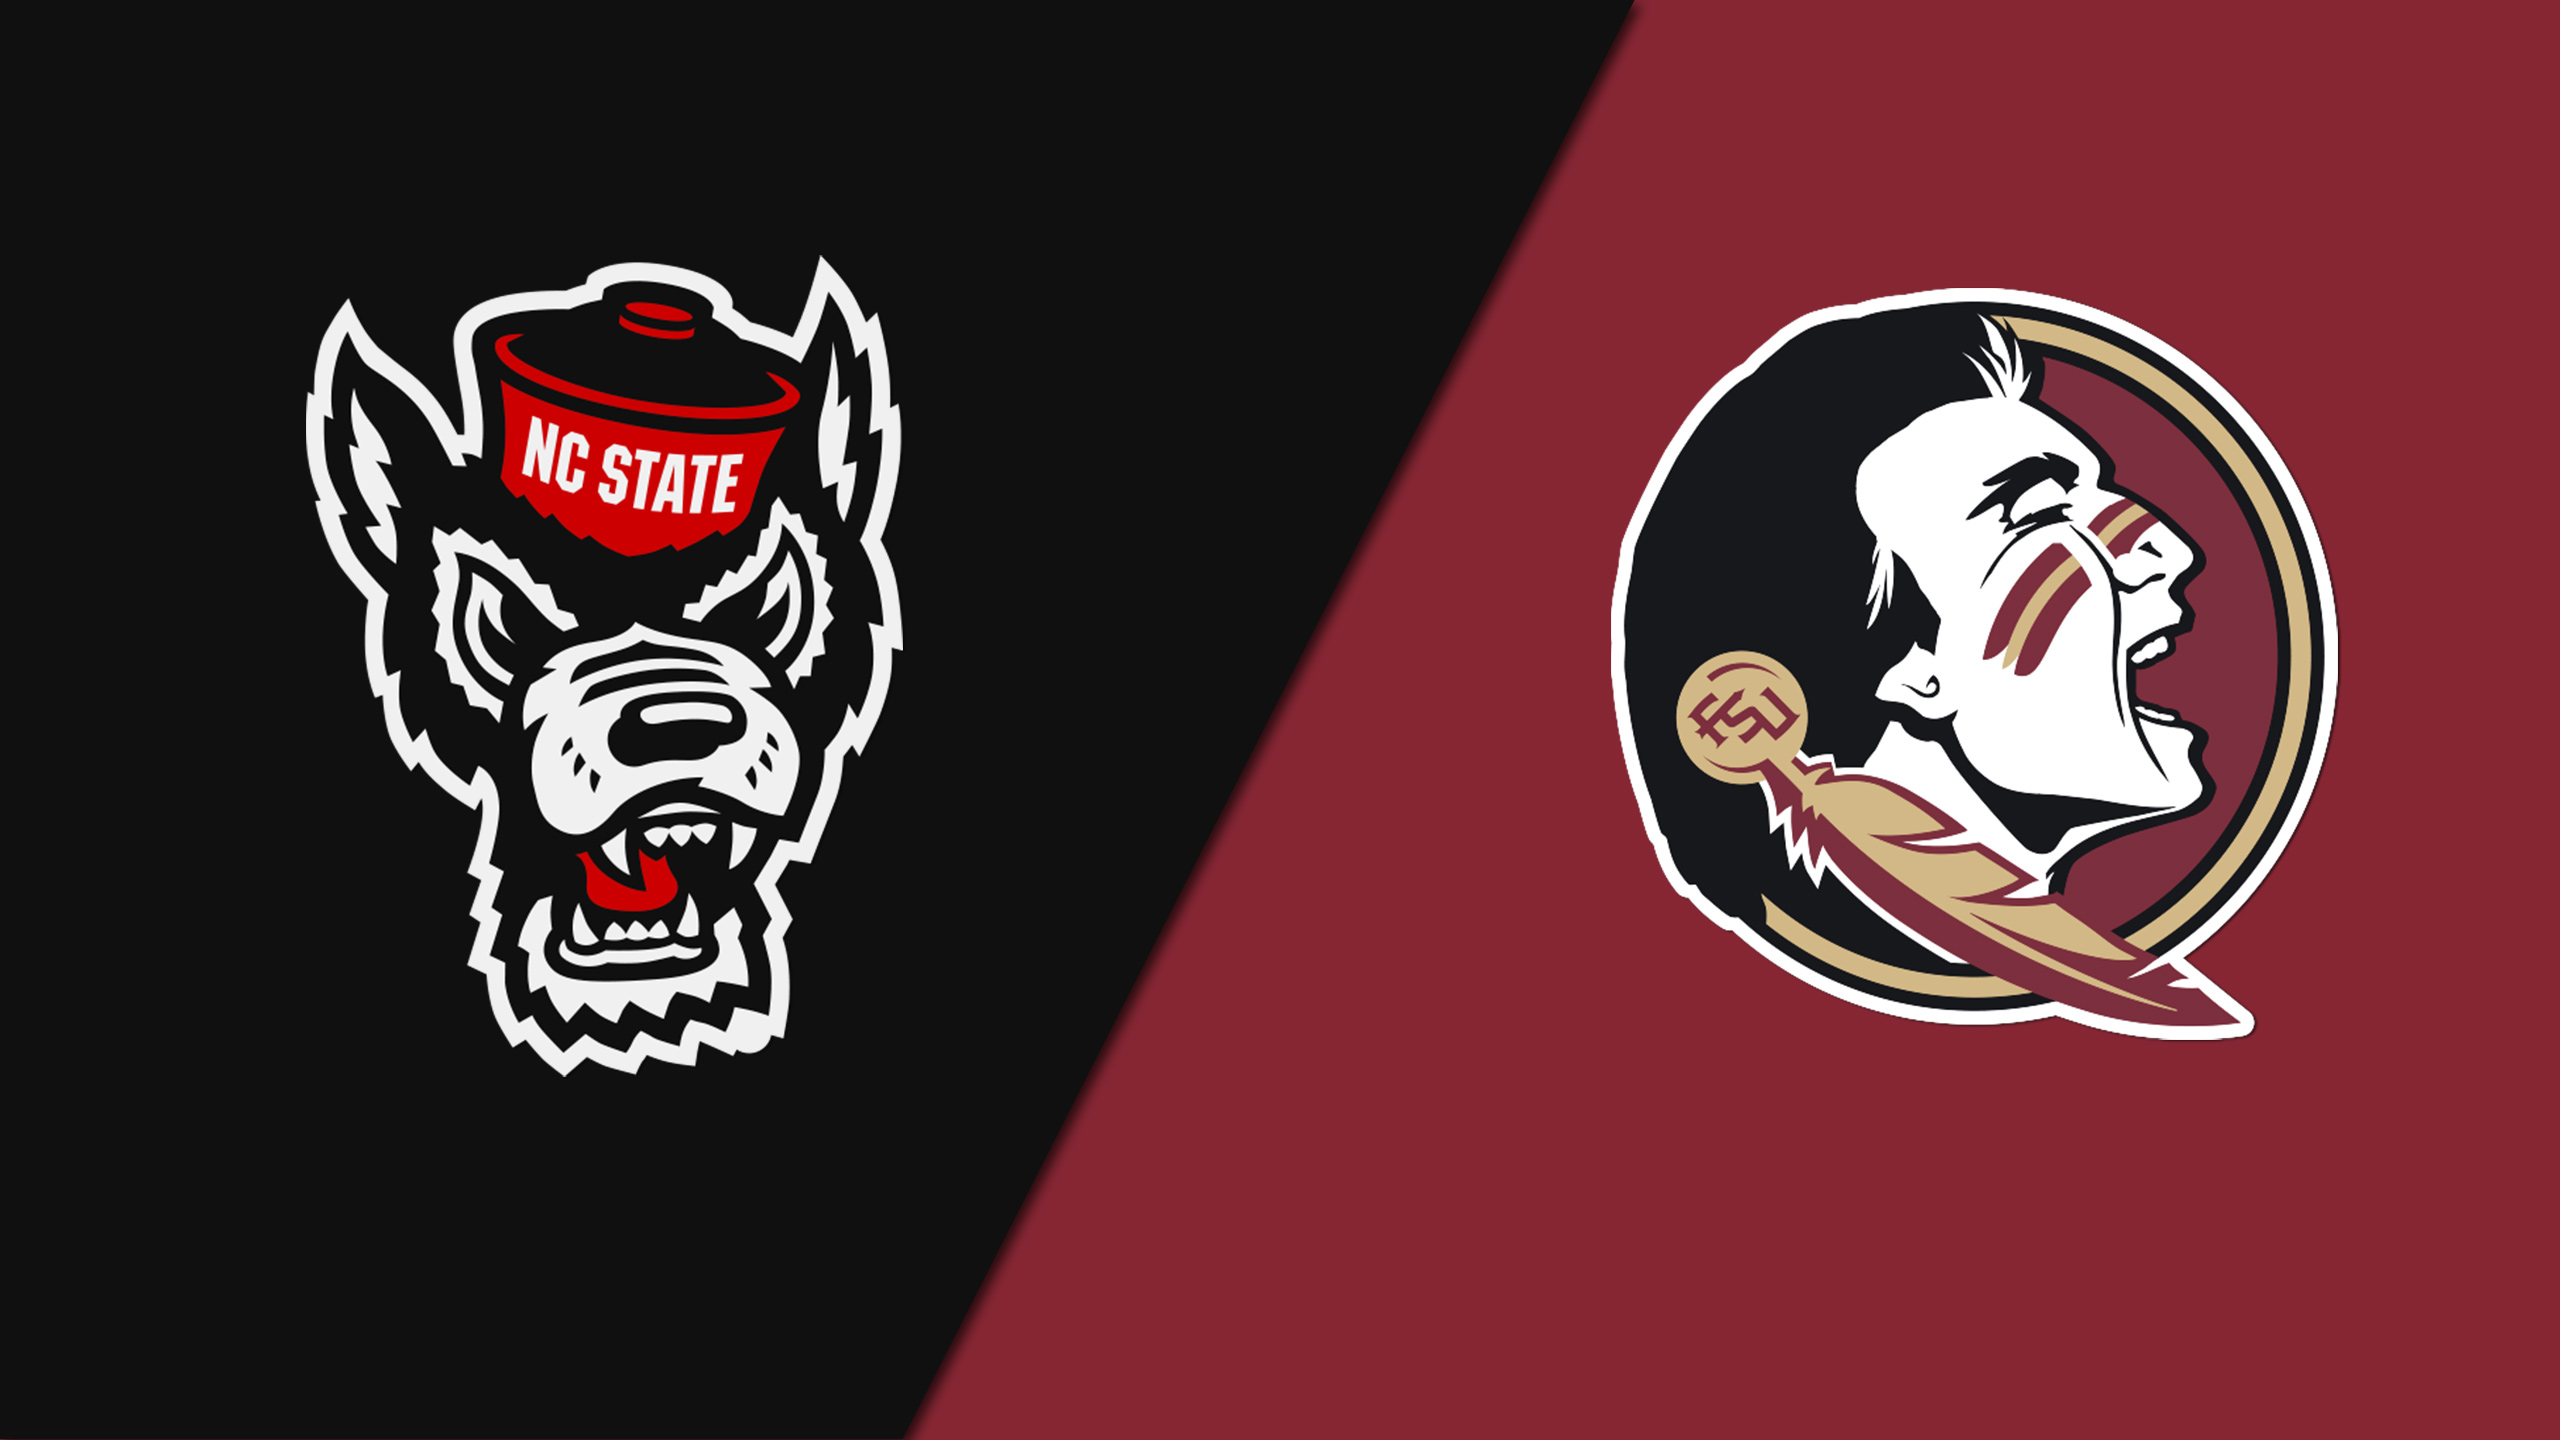 NC State vs. #4 Florida State (Softball)